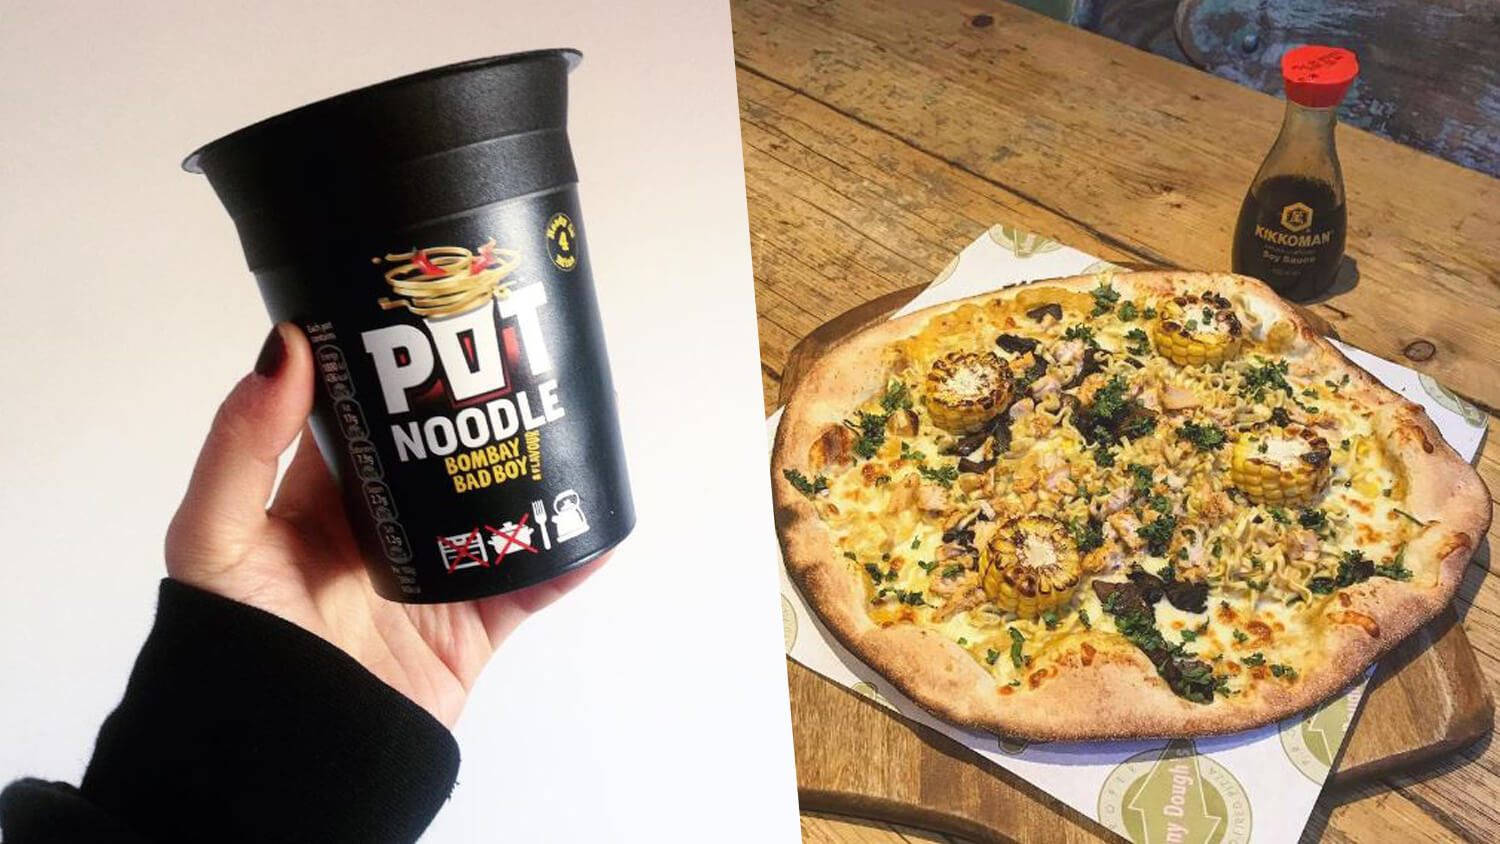 Llandudno's Pizzeria Johnny Dough's Launches Vegan Beef and Tomato and Bombay Badboy Pot Noodle Pizza